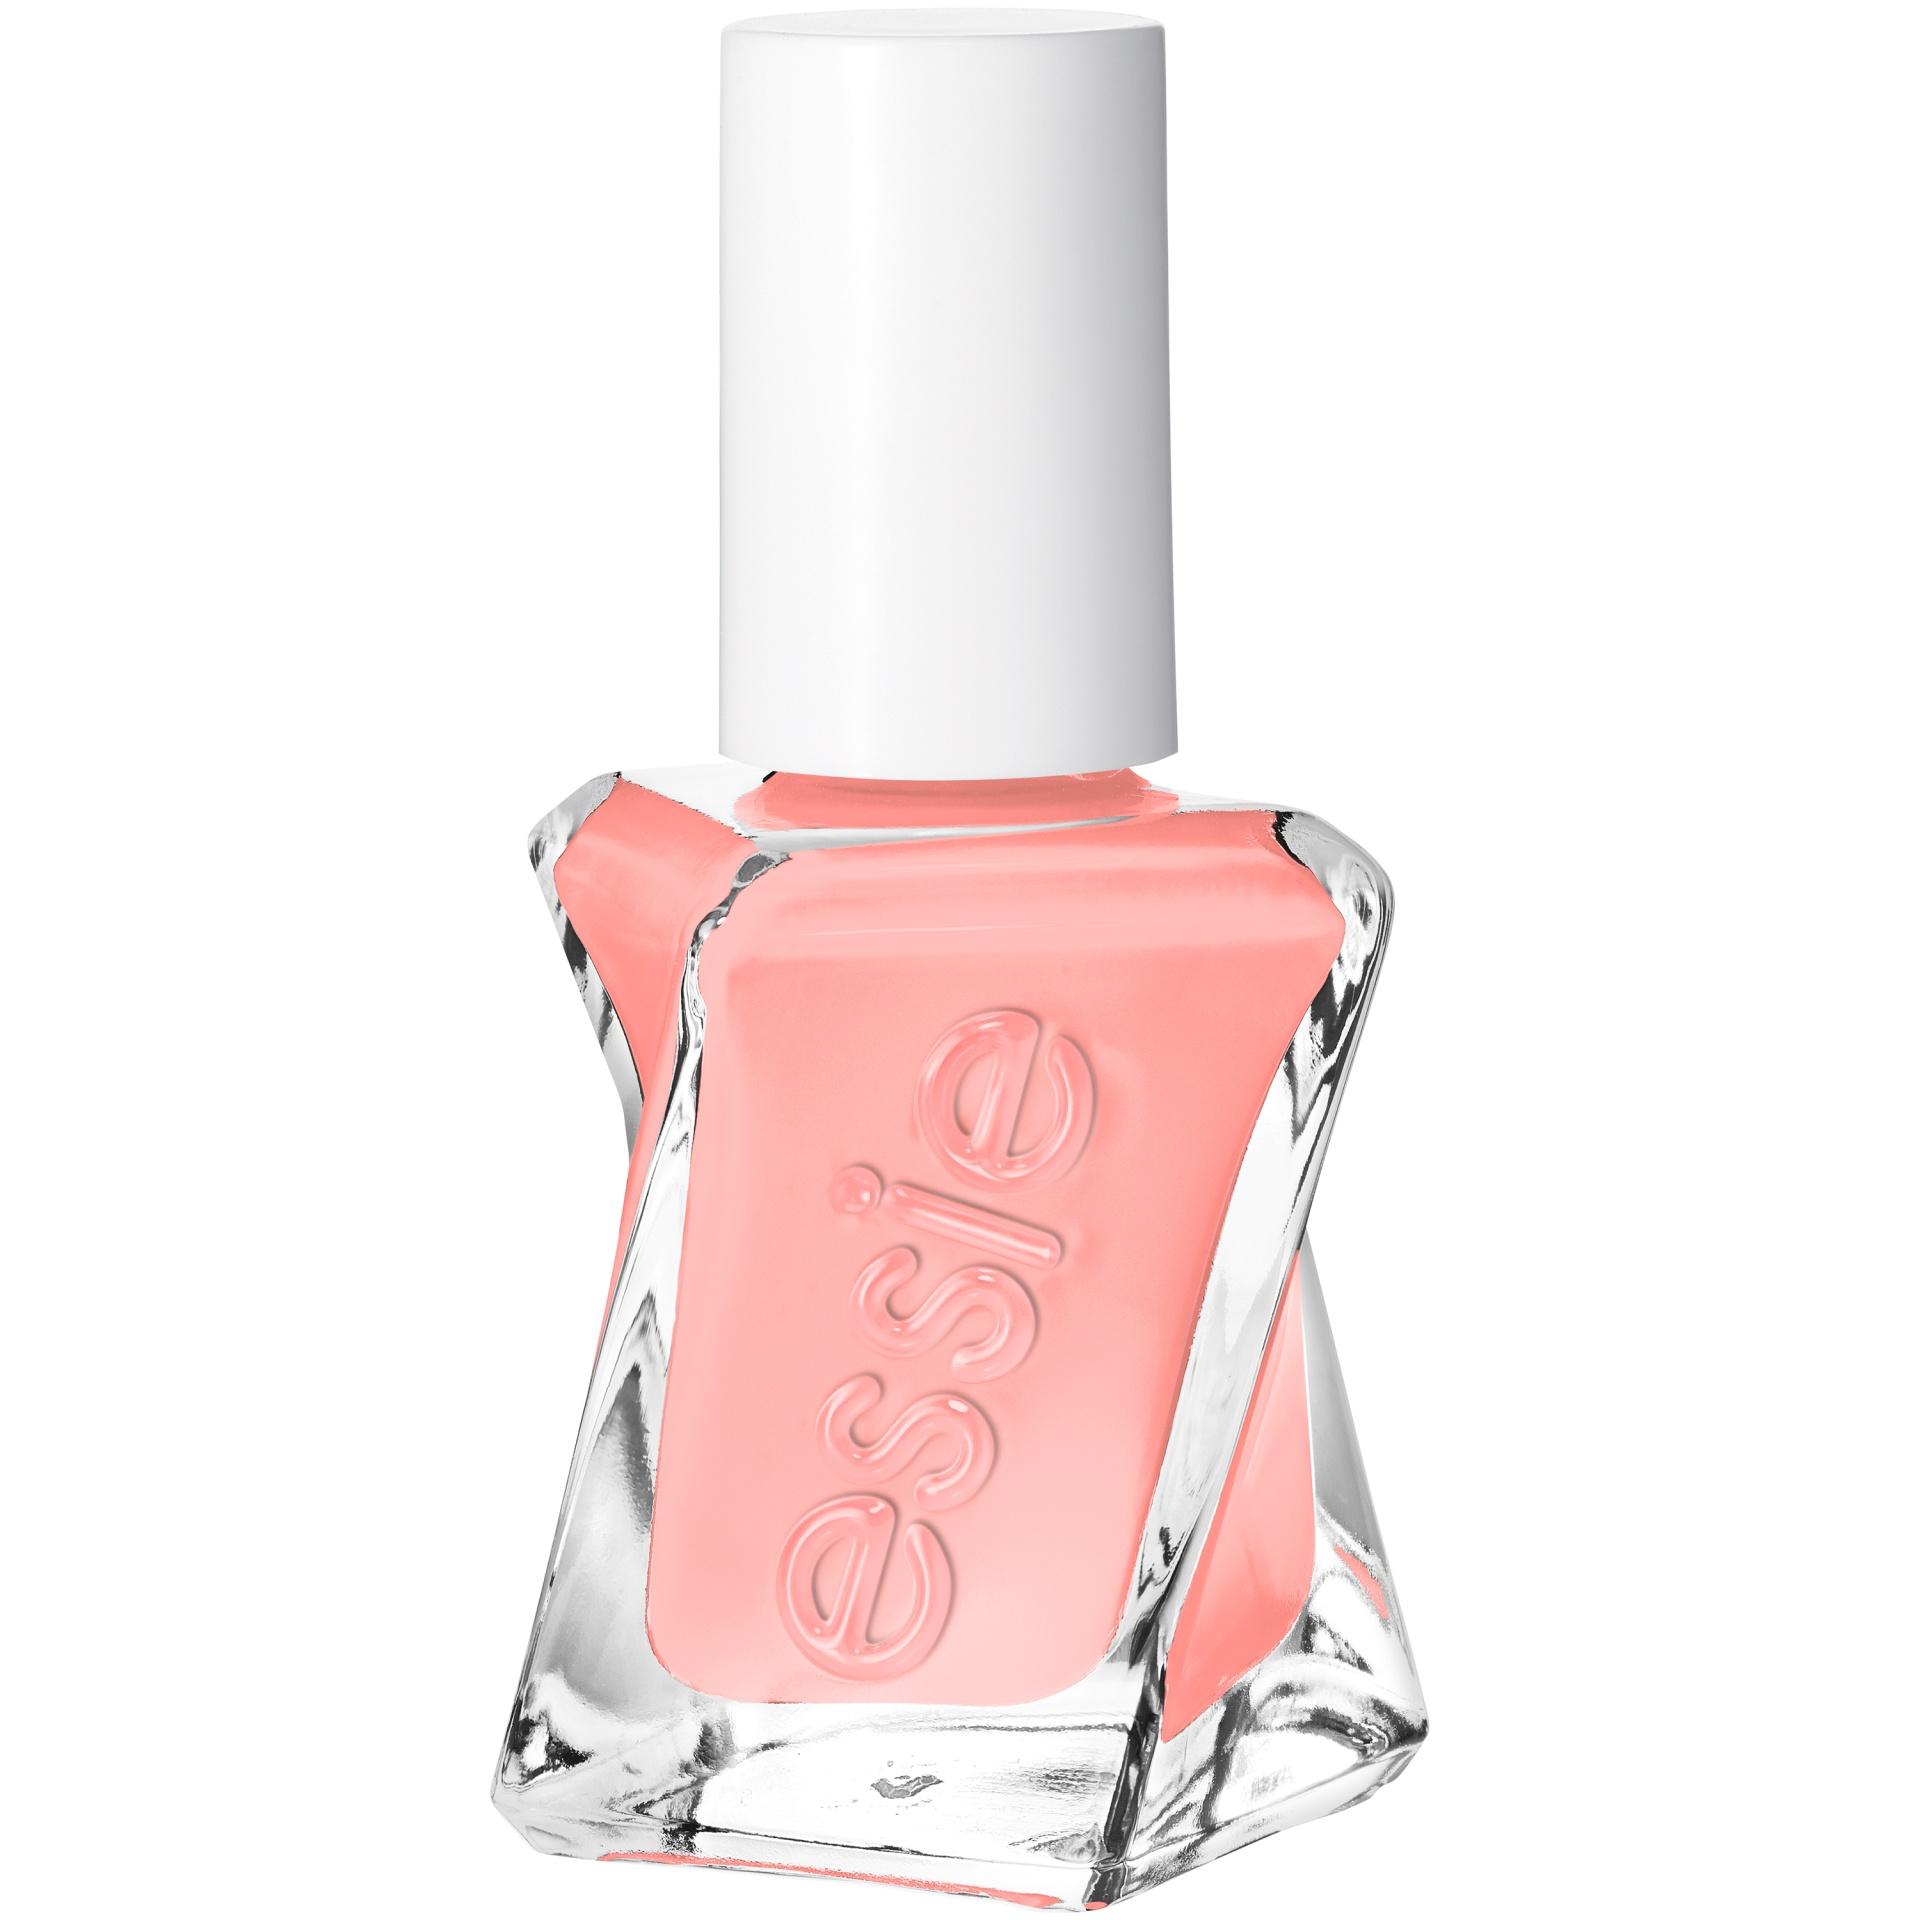 slide 2 of 2, Essie Gel Couture Ballet Nudes Nail Polish 52 Hold The Position,